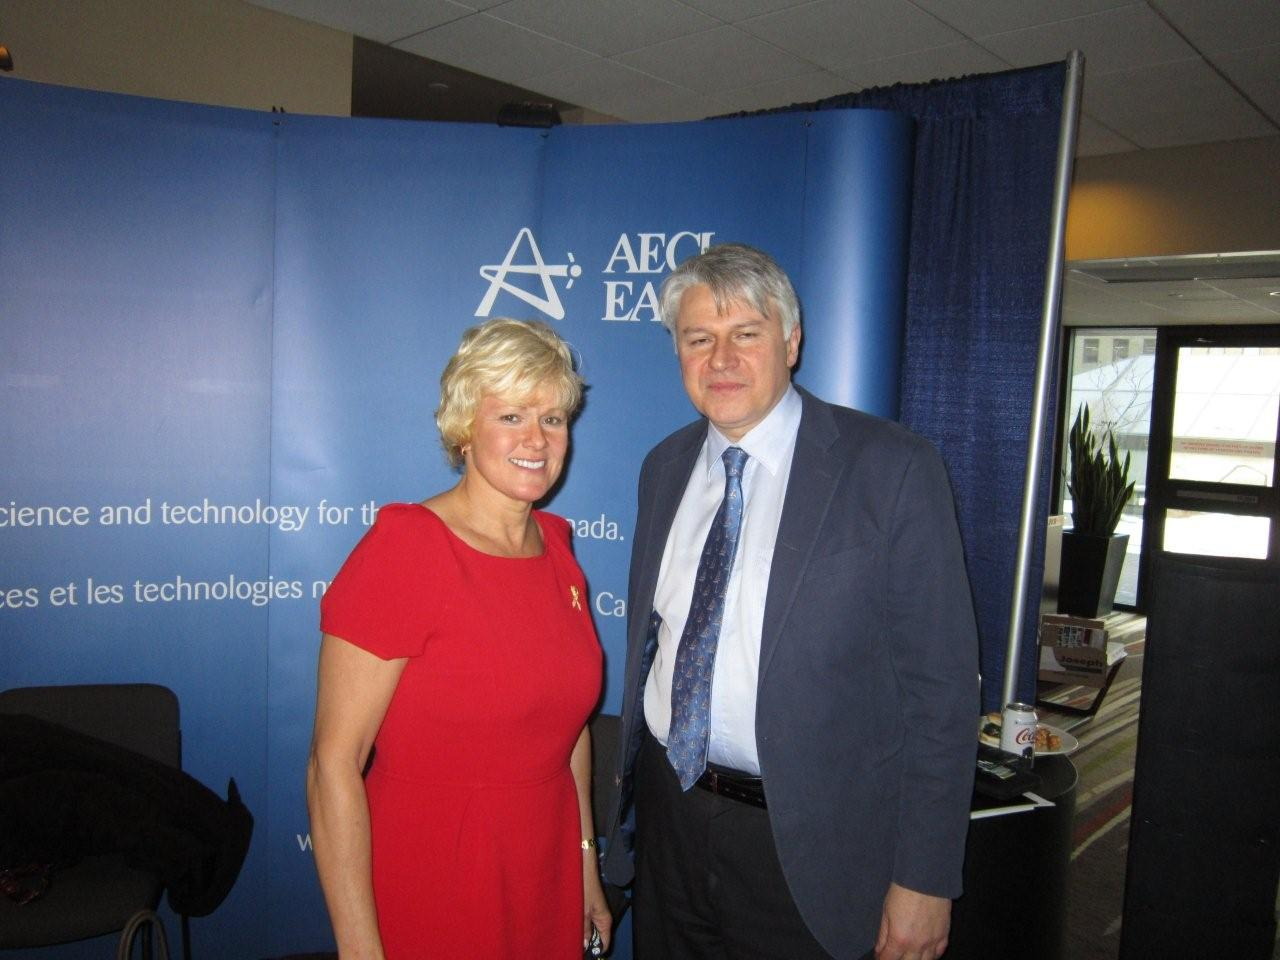 MP CHERYL GALLANT ATTENDS CANADIAN NUCLEAR ASSOCIATION (CNA) ANNUAL CONFERENCE